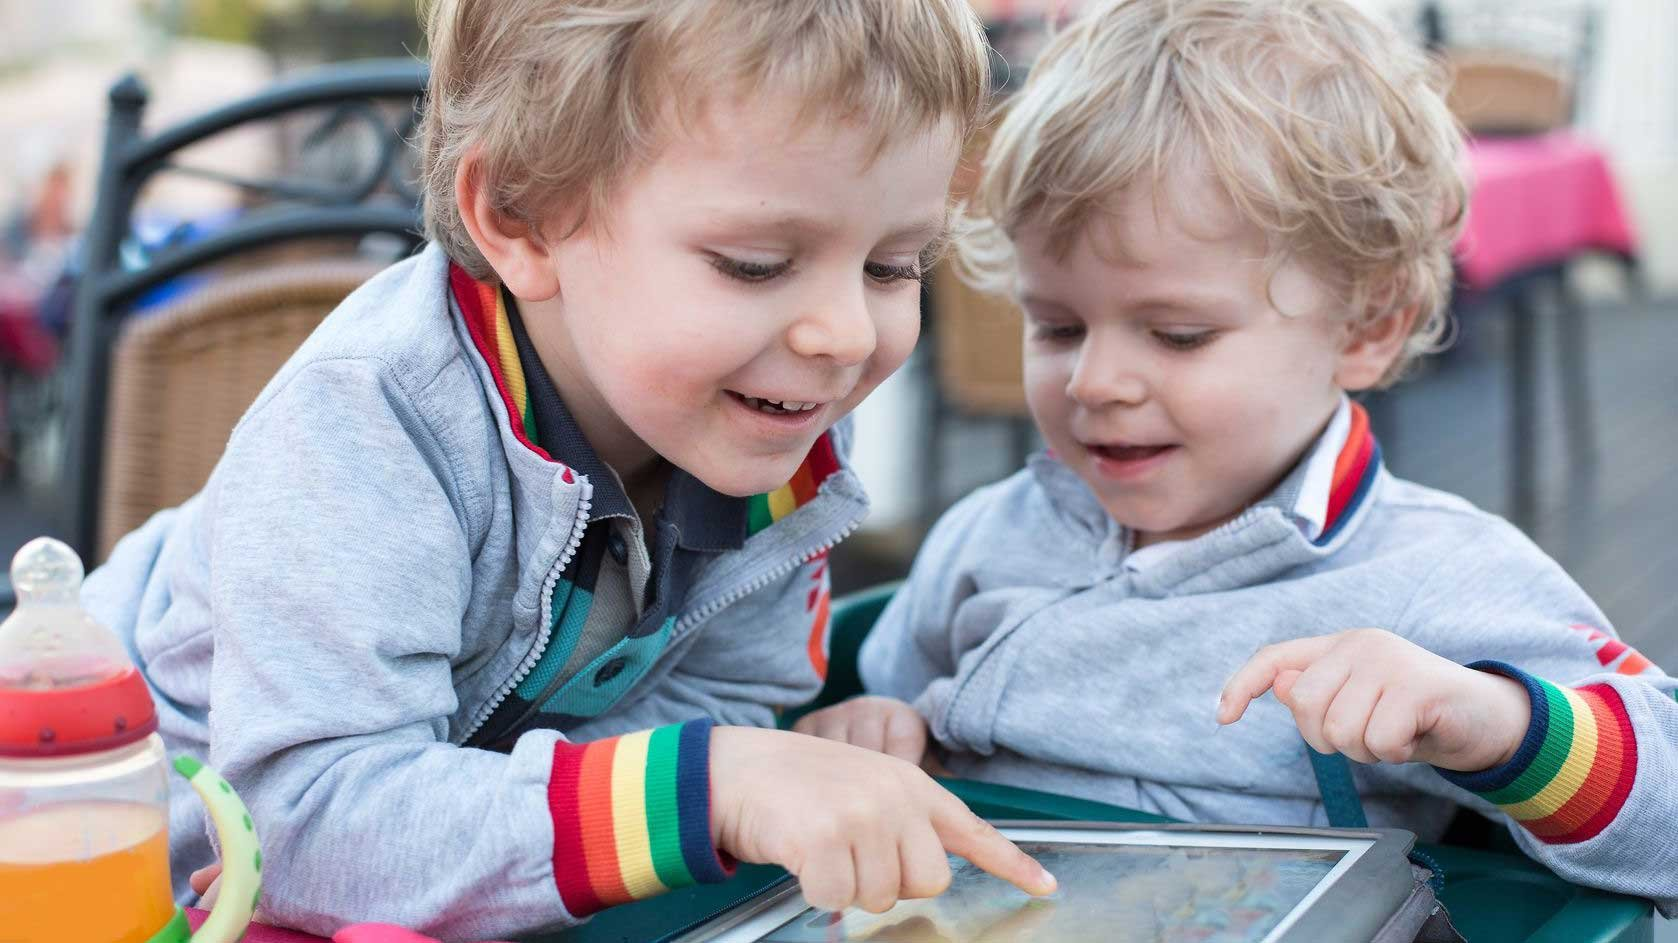 A specialist we spoke with says science shows a direct correlation between the amount of time kids spend online and changes in their developing brains.(Source: Irina Schmidt via 123RF)